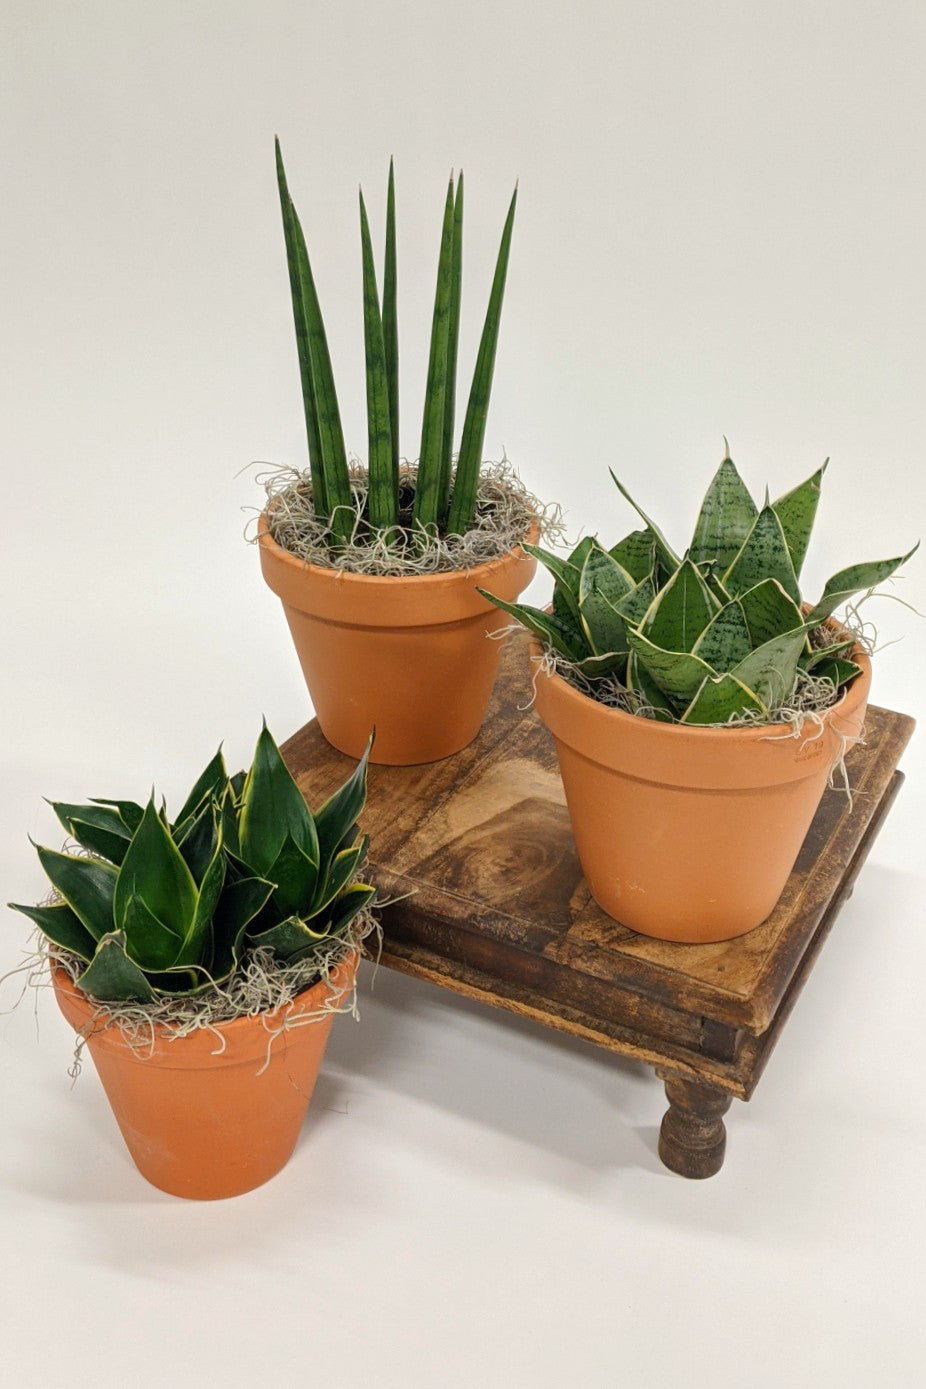 Simply Snakes: For Those with a Less Than Green Thumb